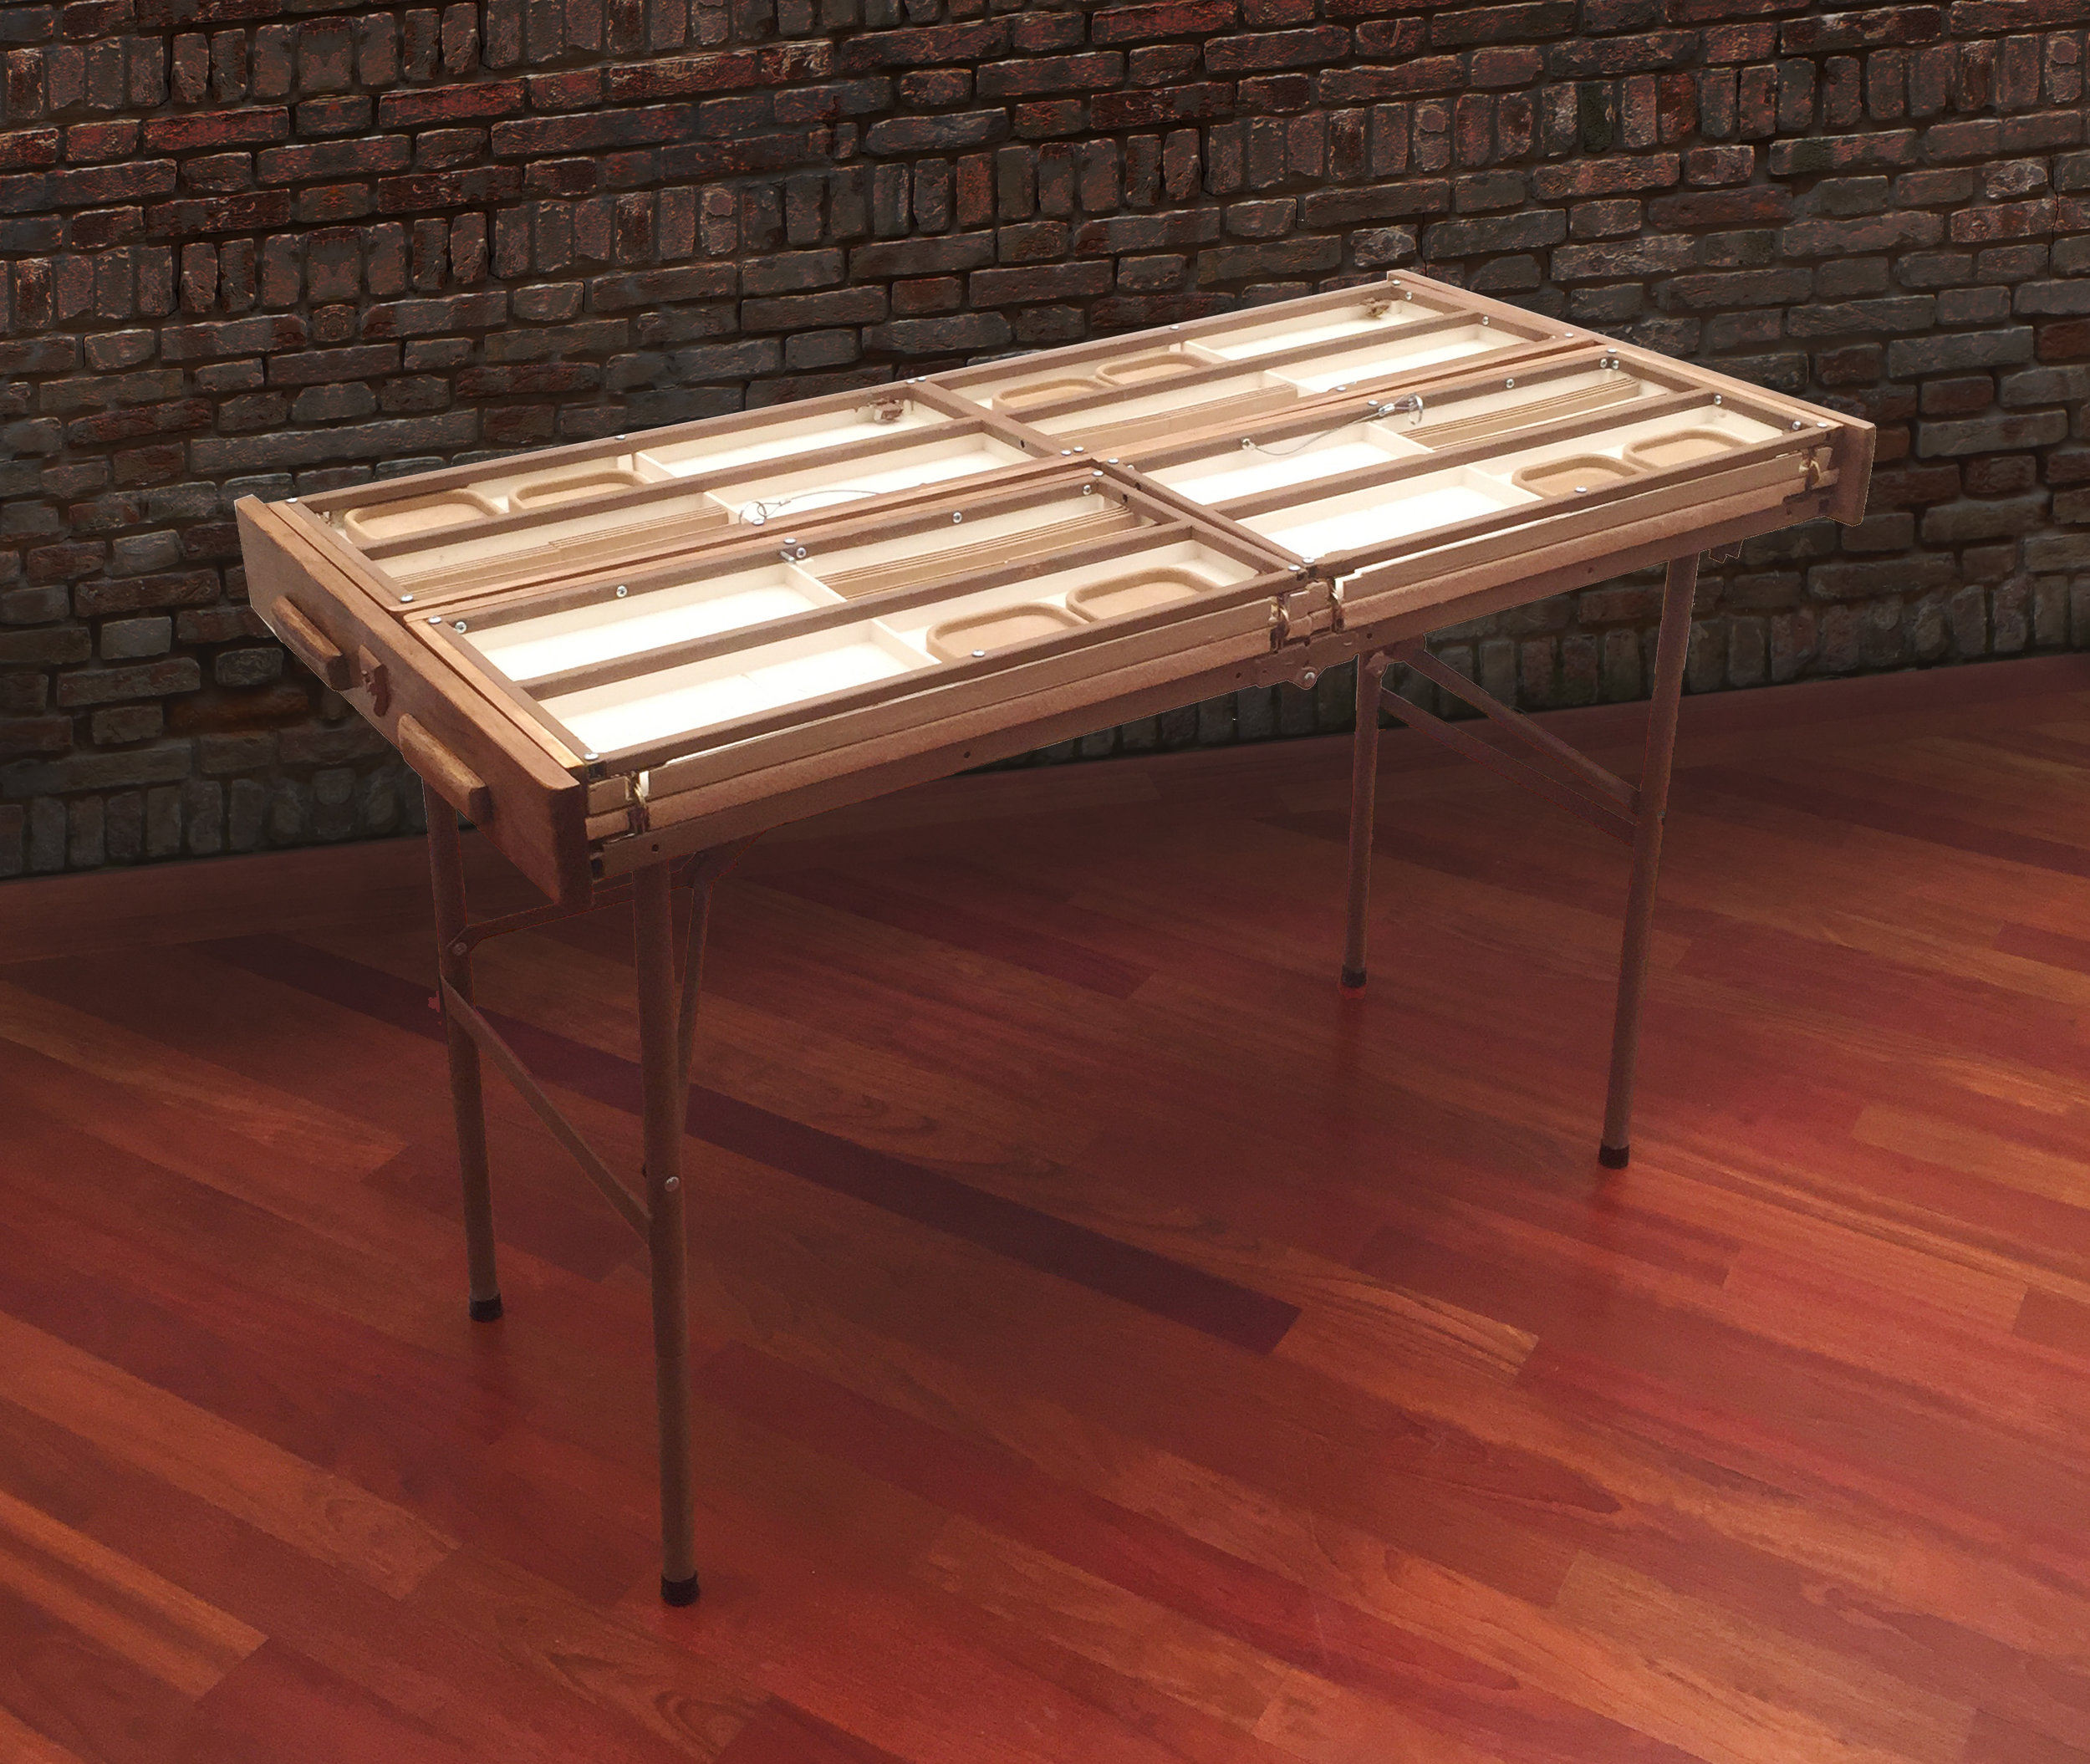 Table closed upright2.jpg